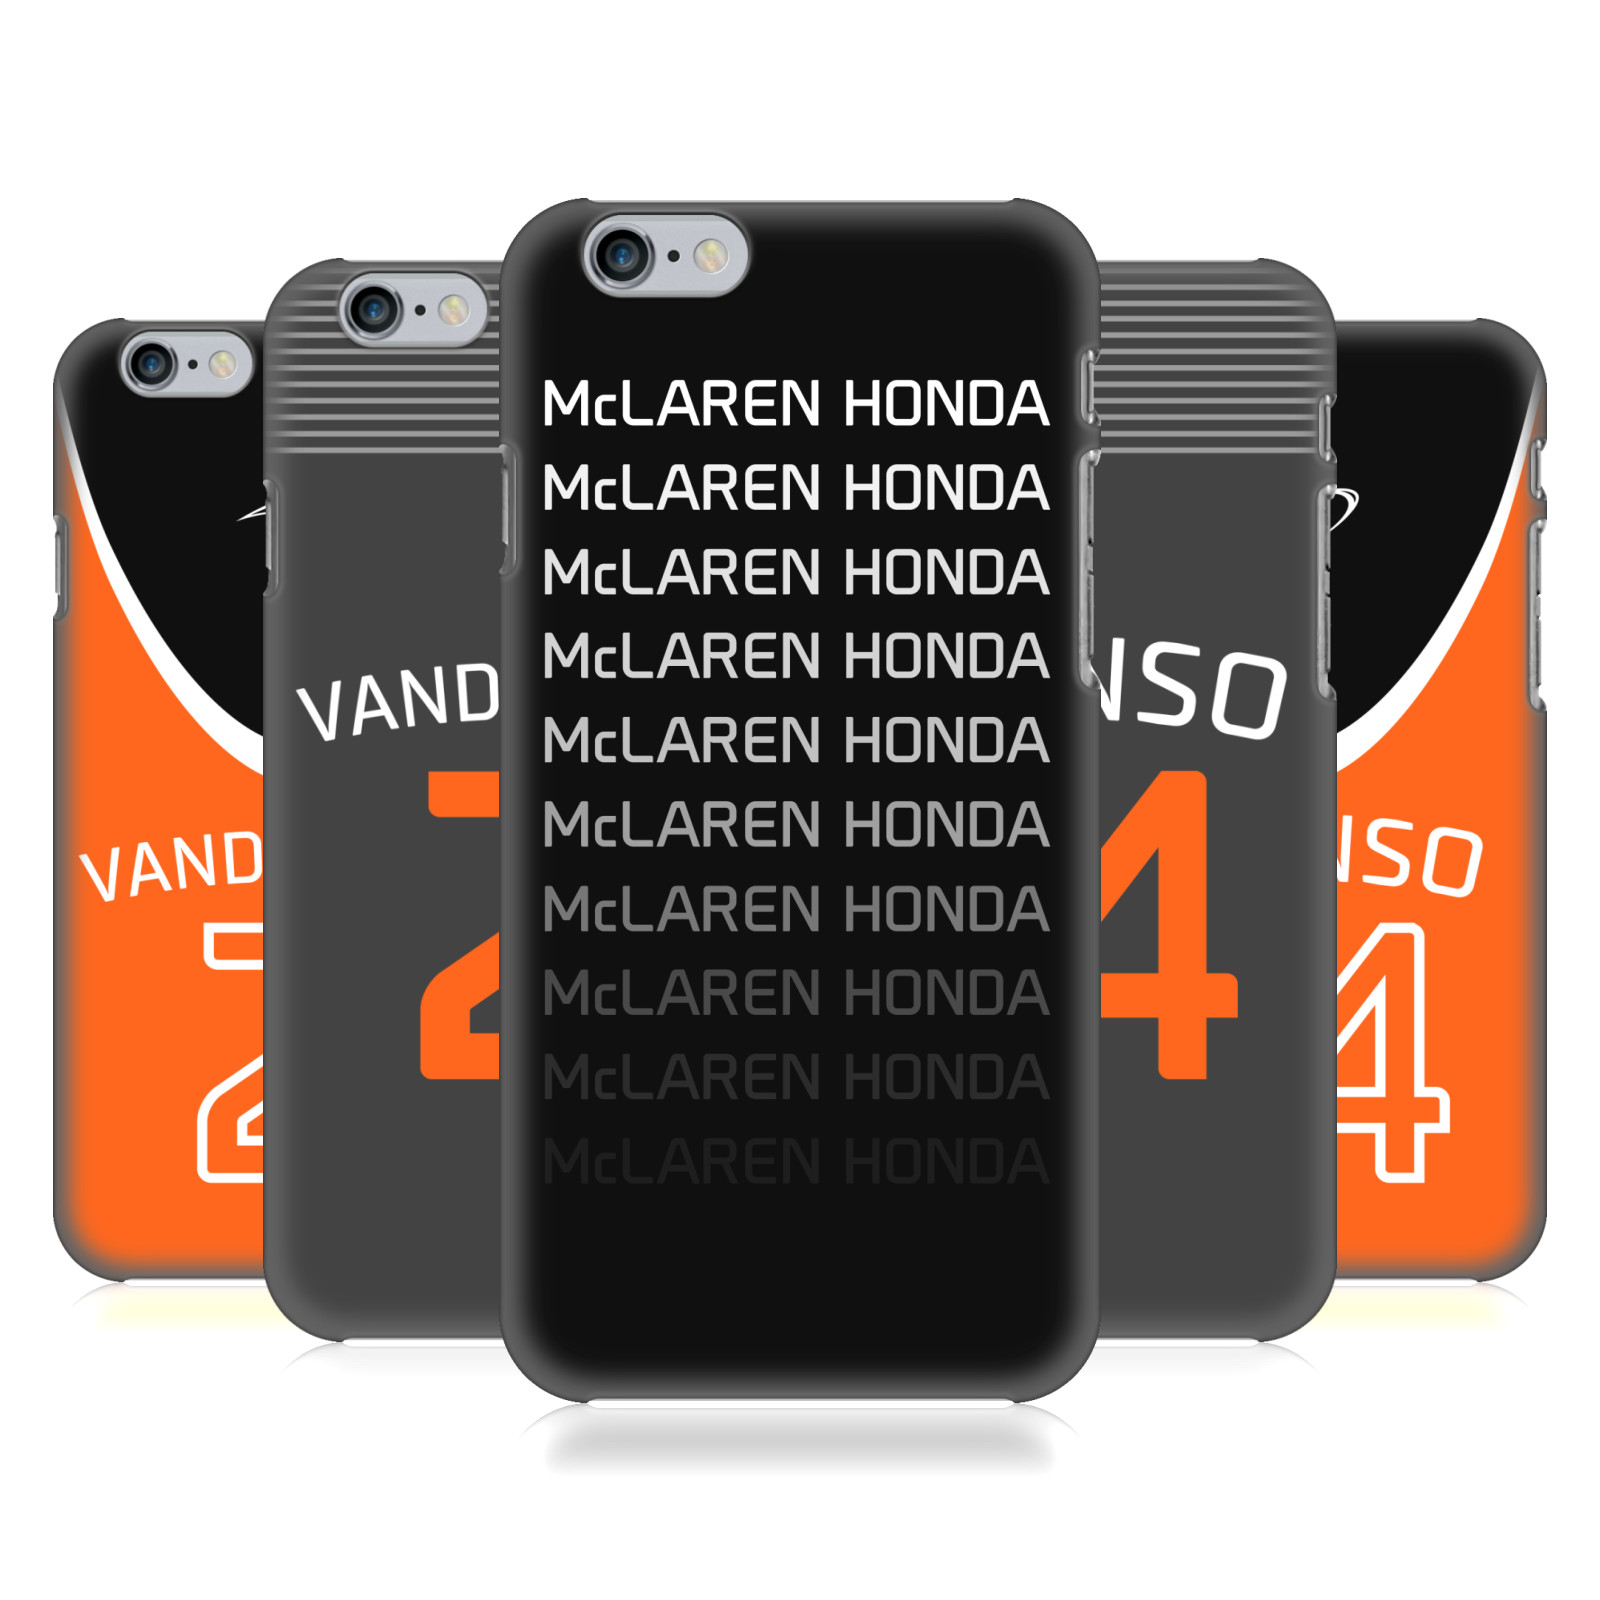 McLaren Honda Phone and Tablet cases